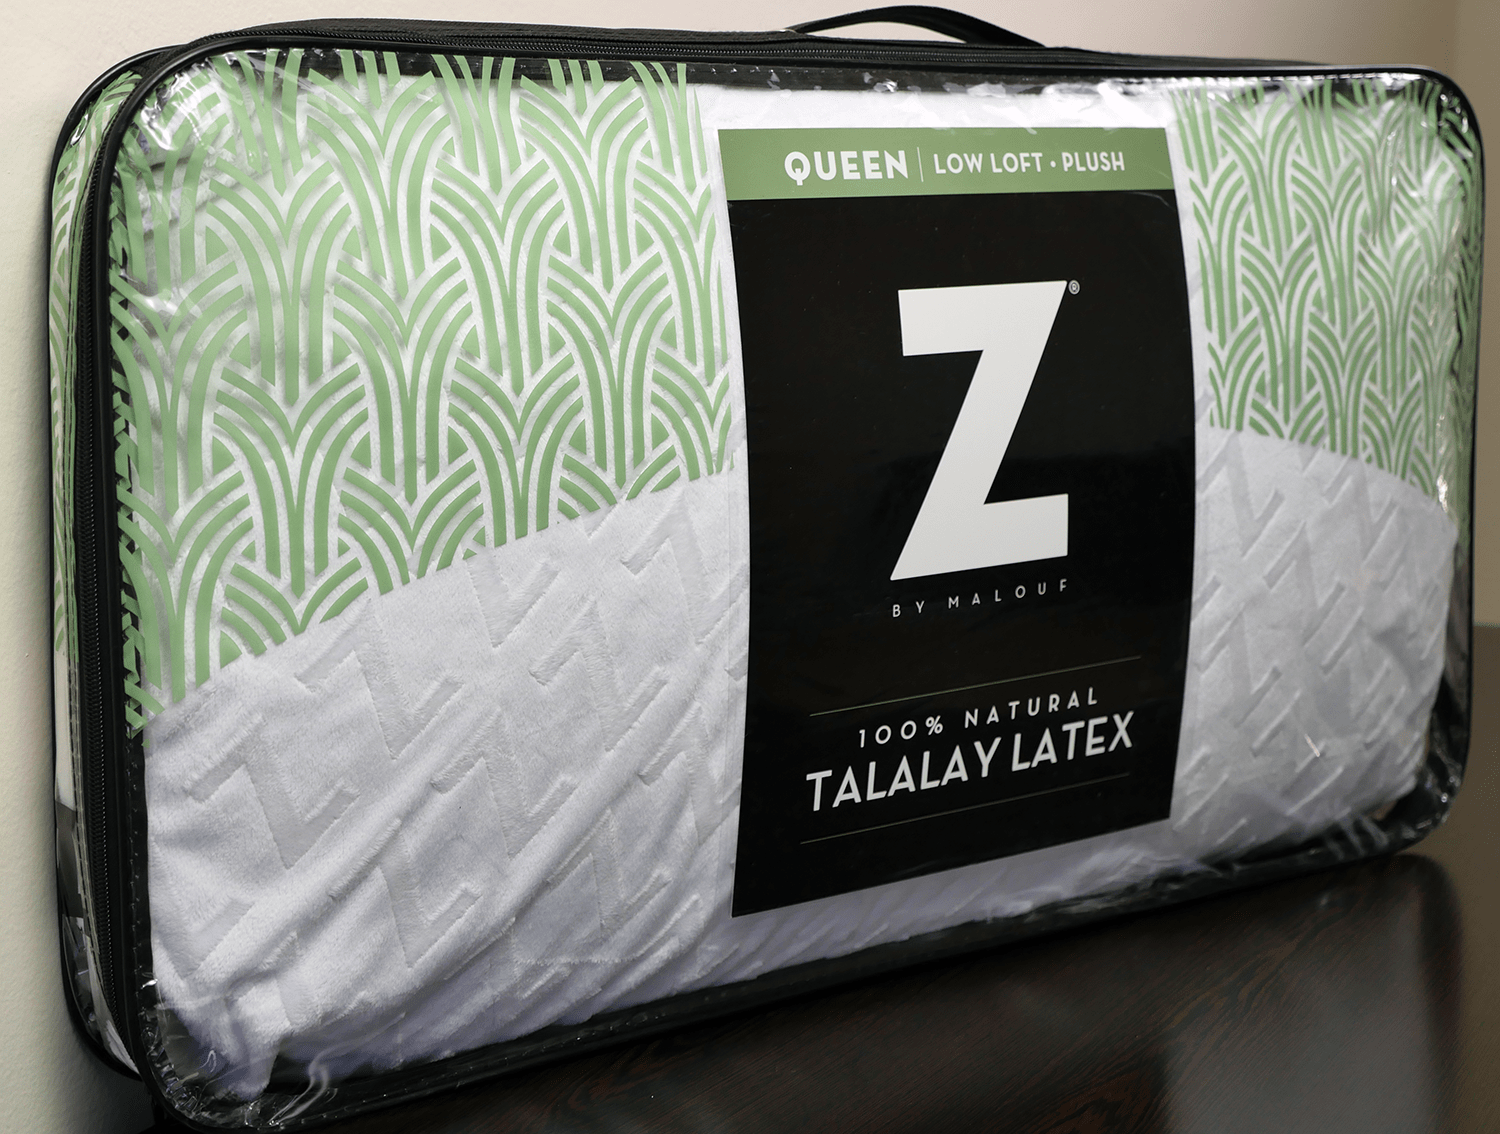 Malouf Talalay Latex Pillow Review Sleepopolis